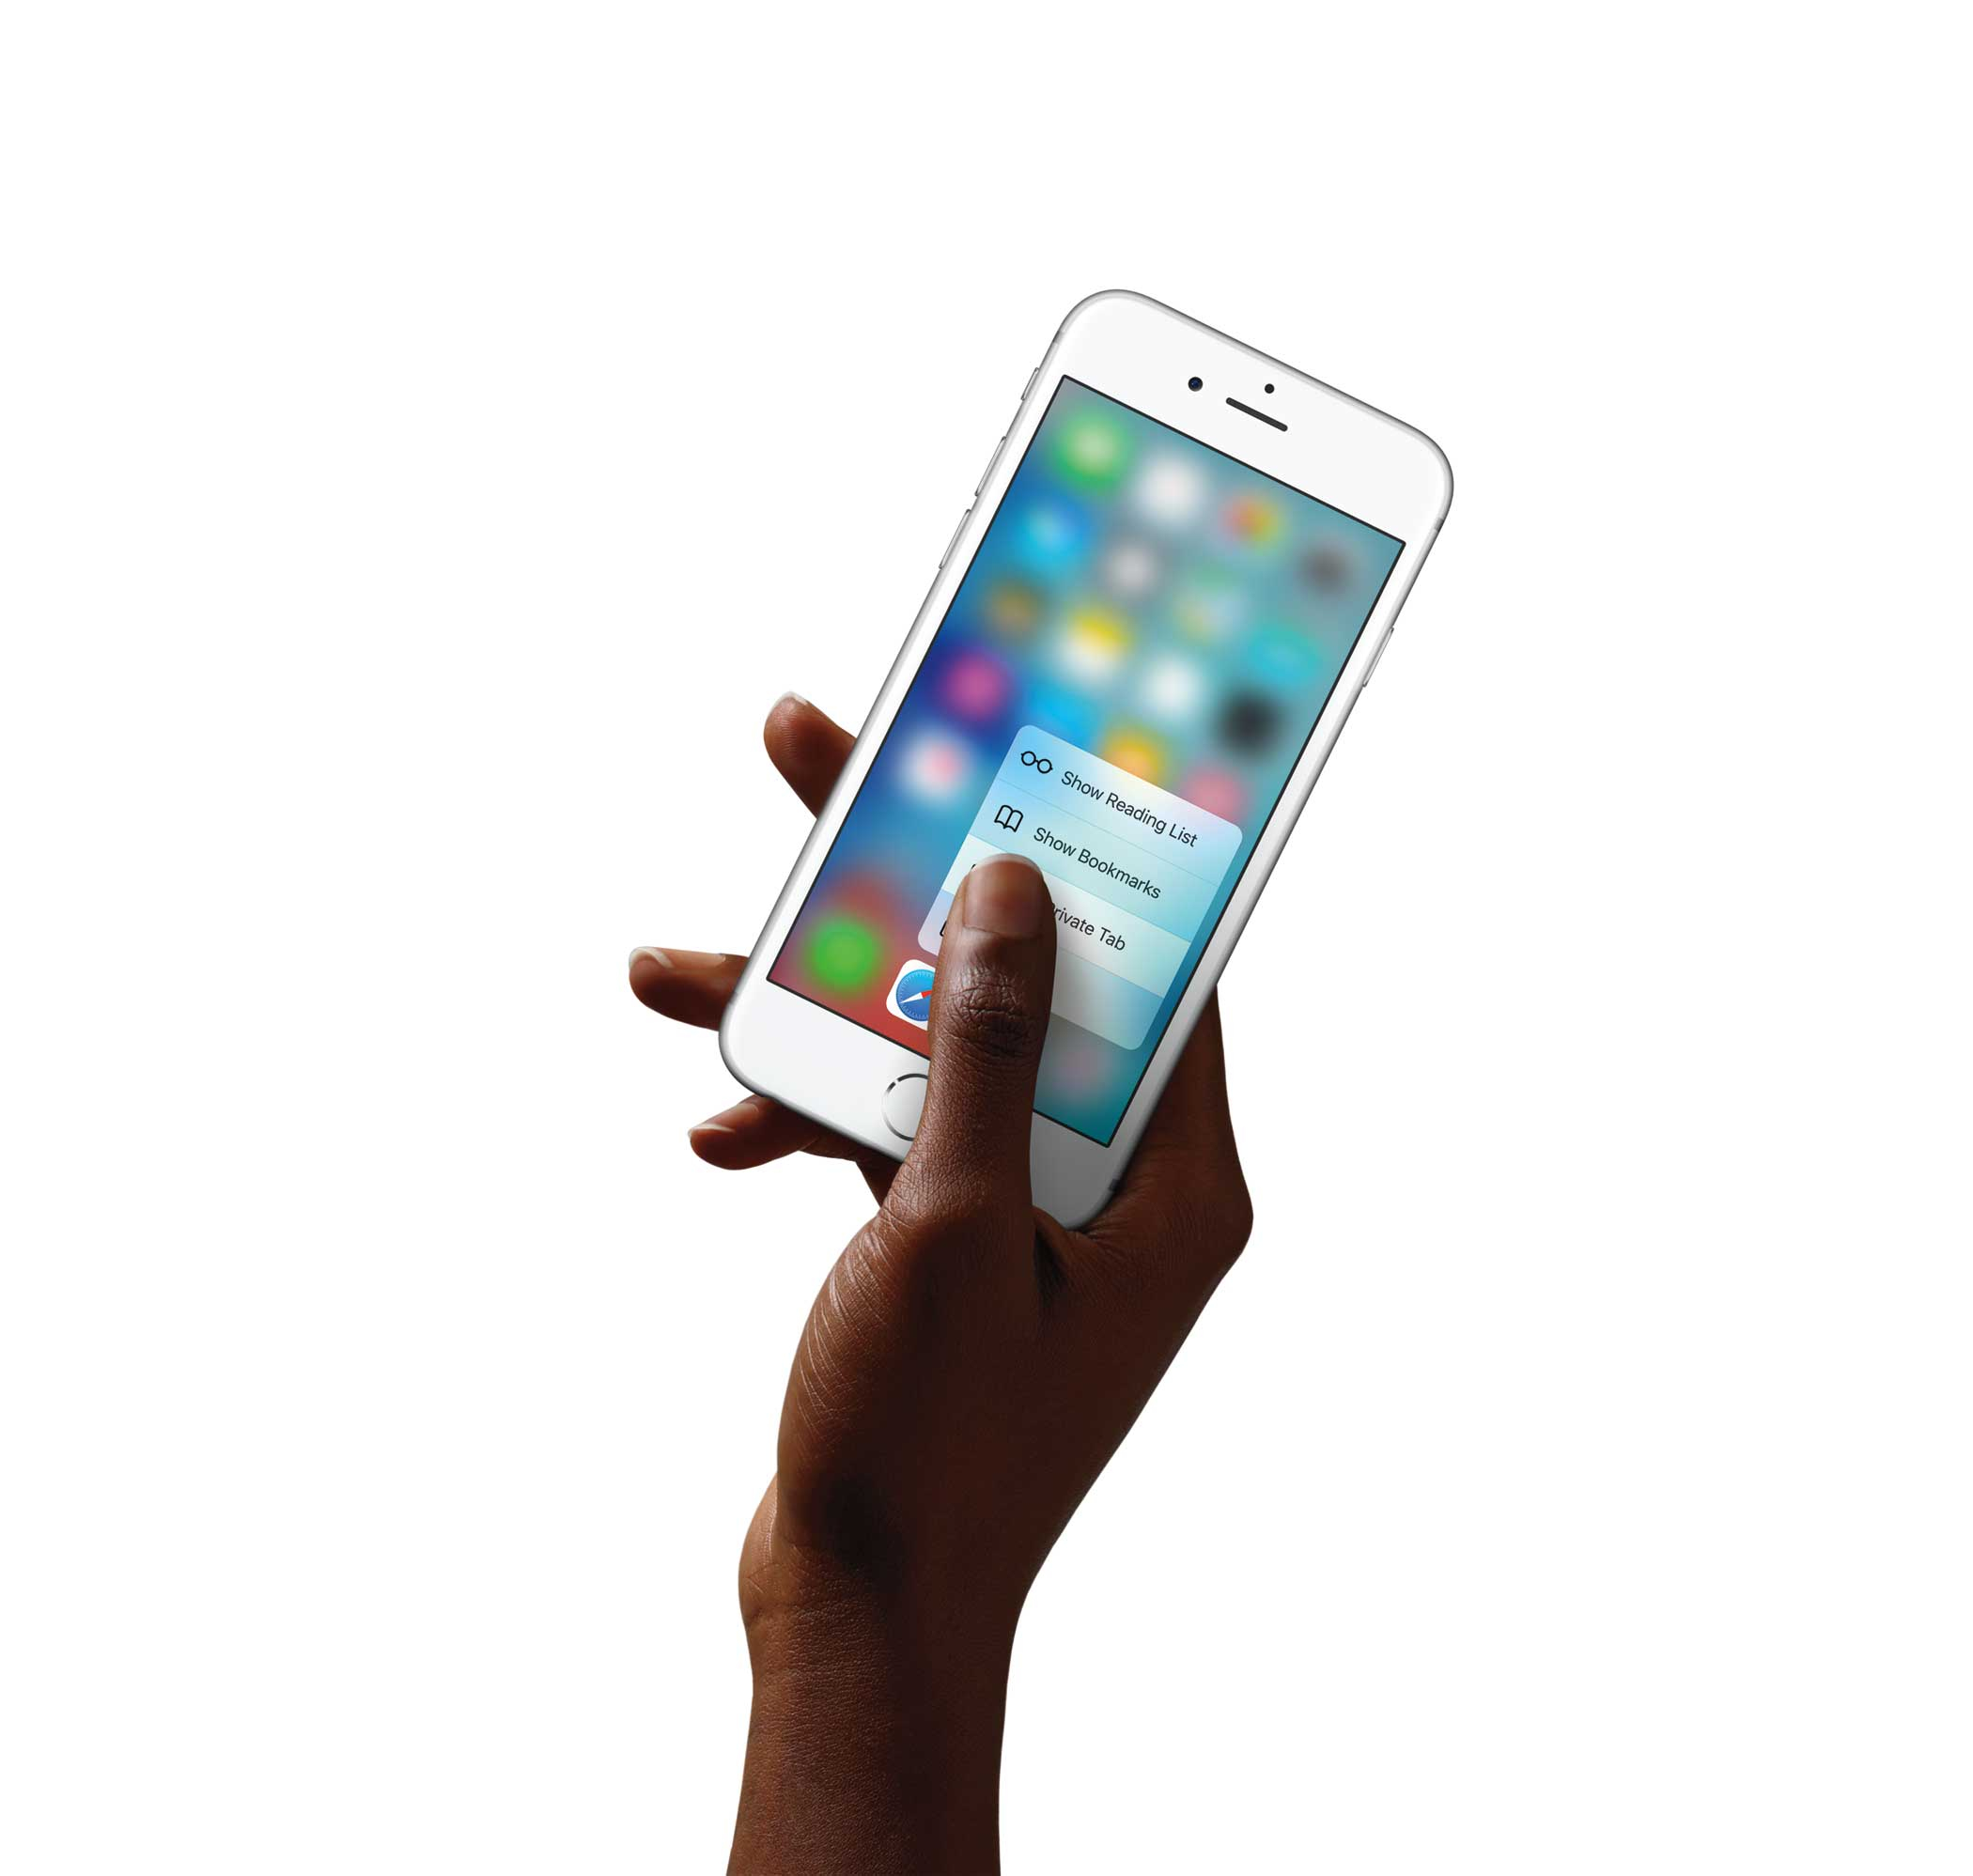 The new iphone has Force Touch